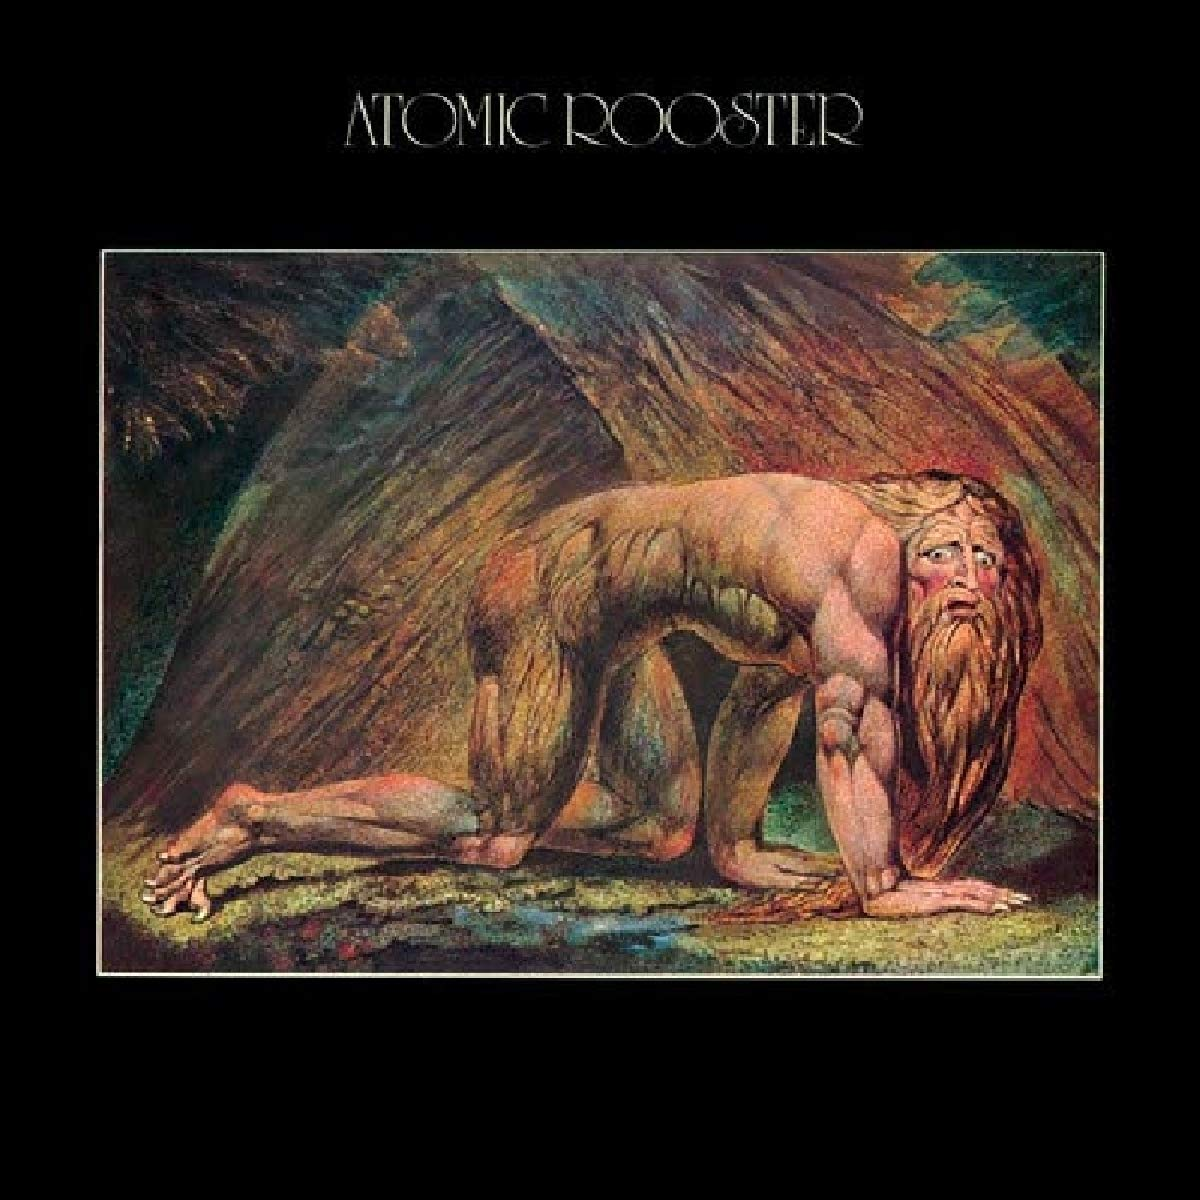 Vinilo : Atomic Rooster - Death Walks Behind You (Colored Vinyl, Limited Edition, Deluxe Edition)